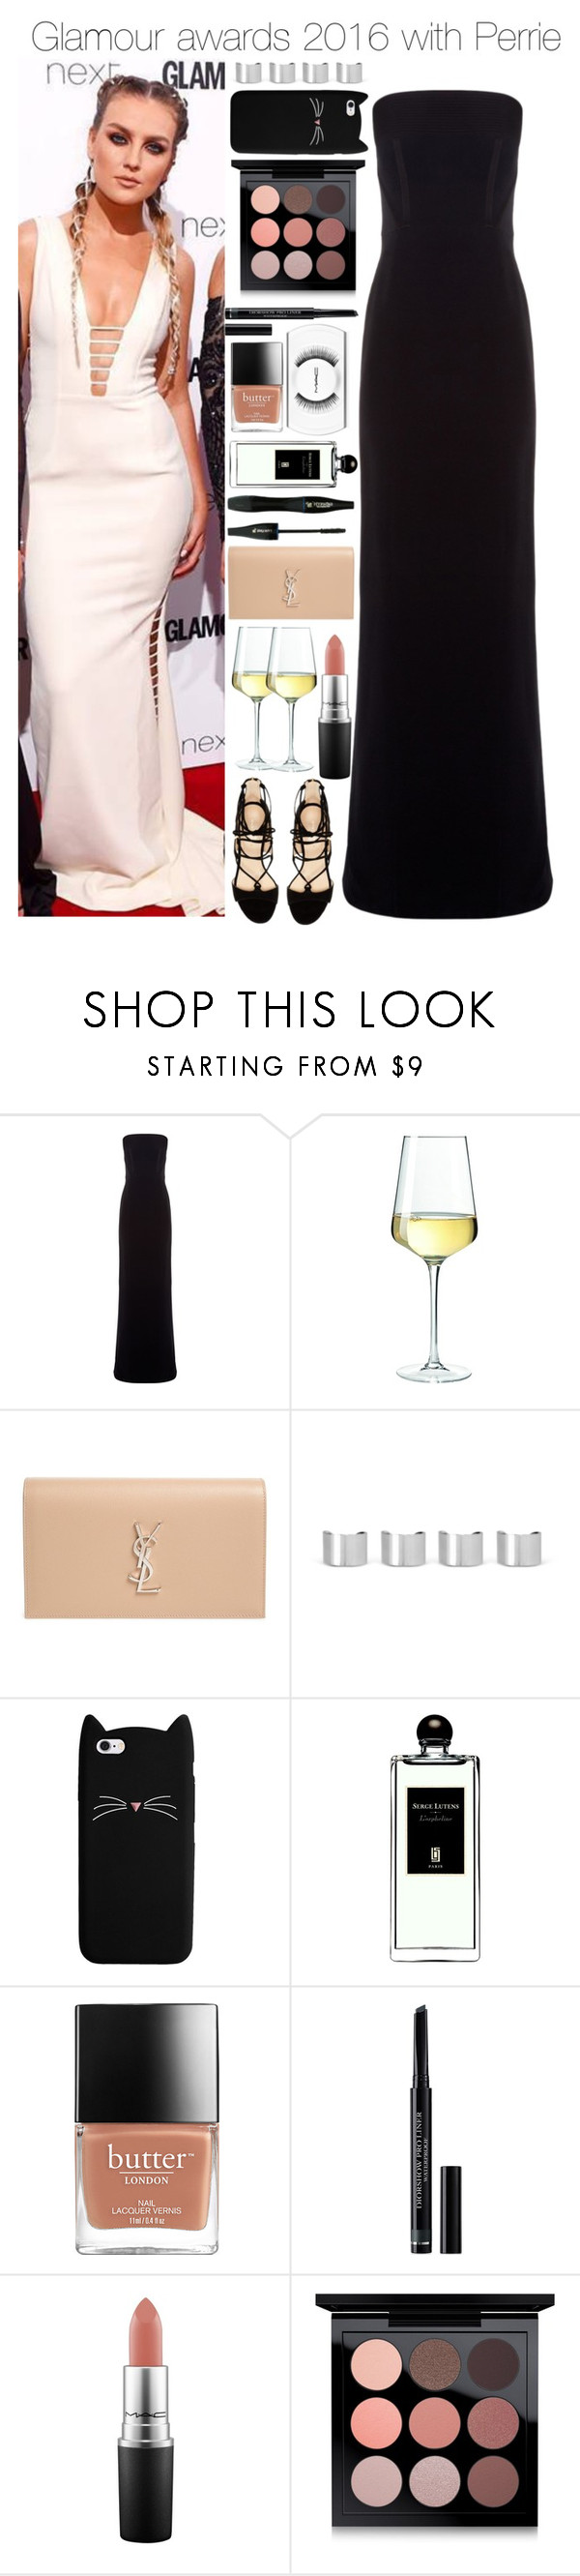 """""""Glamour awards 2016 with Perrie"""" by xhoneymoonavenuex ❤ liked on Polyvore featuring Balenciaga, Marc Fisher, Yves Saint Laurent, Maison Margiela, Lancôme, Serge Lutens, Christian Dior and MAC Cosmetics"""